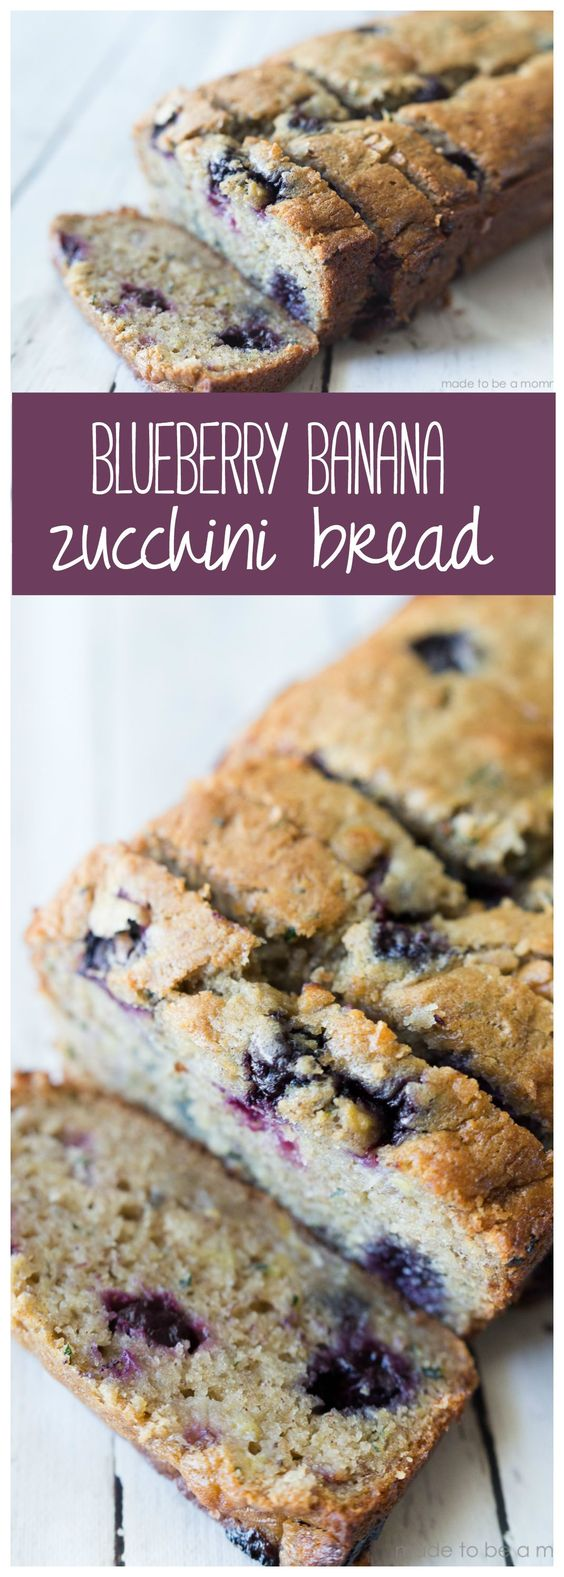 Blueberry Banana Zucchini Bread #blueberry #banana #zucchini #bread